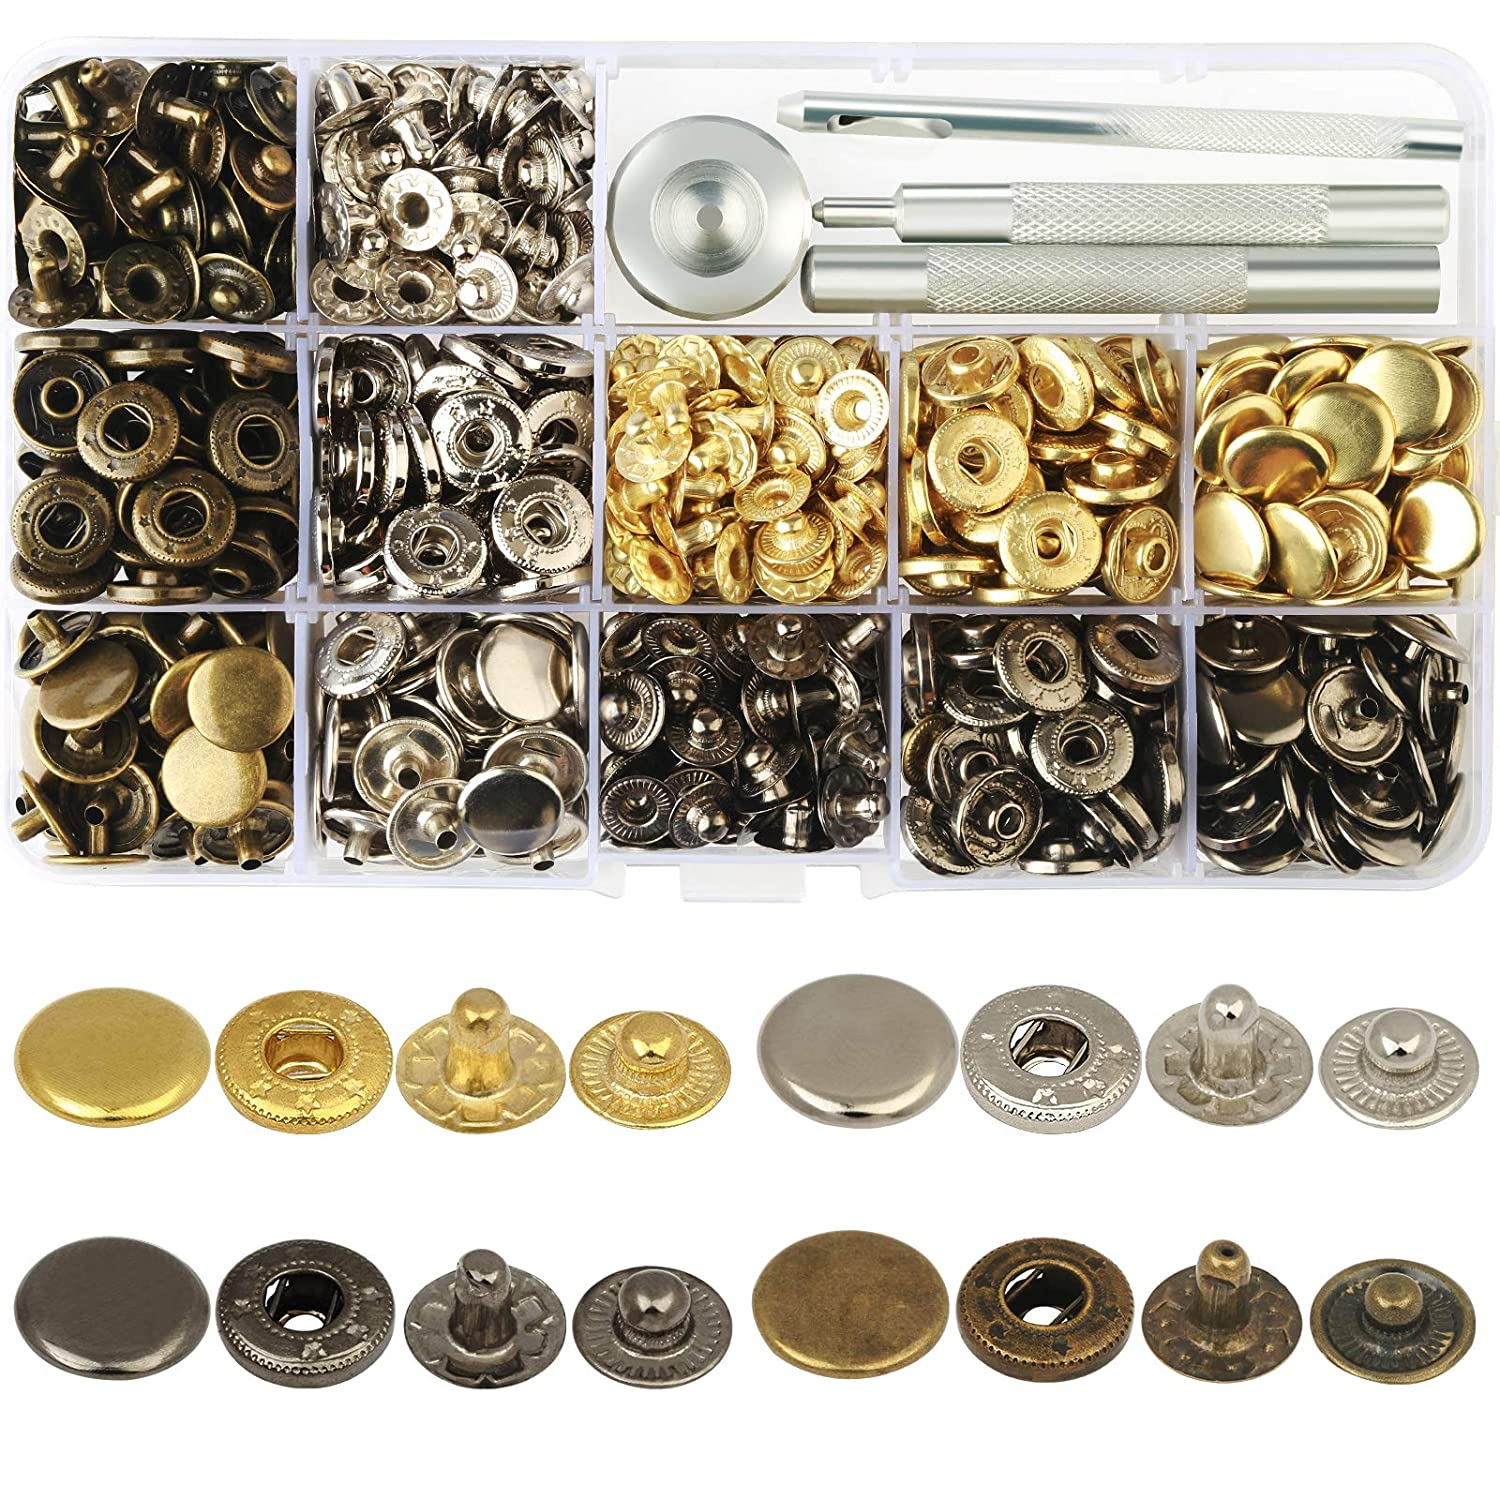 LANMOK 160 Sets Snap Fasteners Durable Metal Snap Button Kit Tool Press Studs with Base & Fixing Tool for Overalls Backpacks Belts Leather Craft-12.5mm in Diameter 4337006008